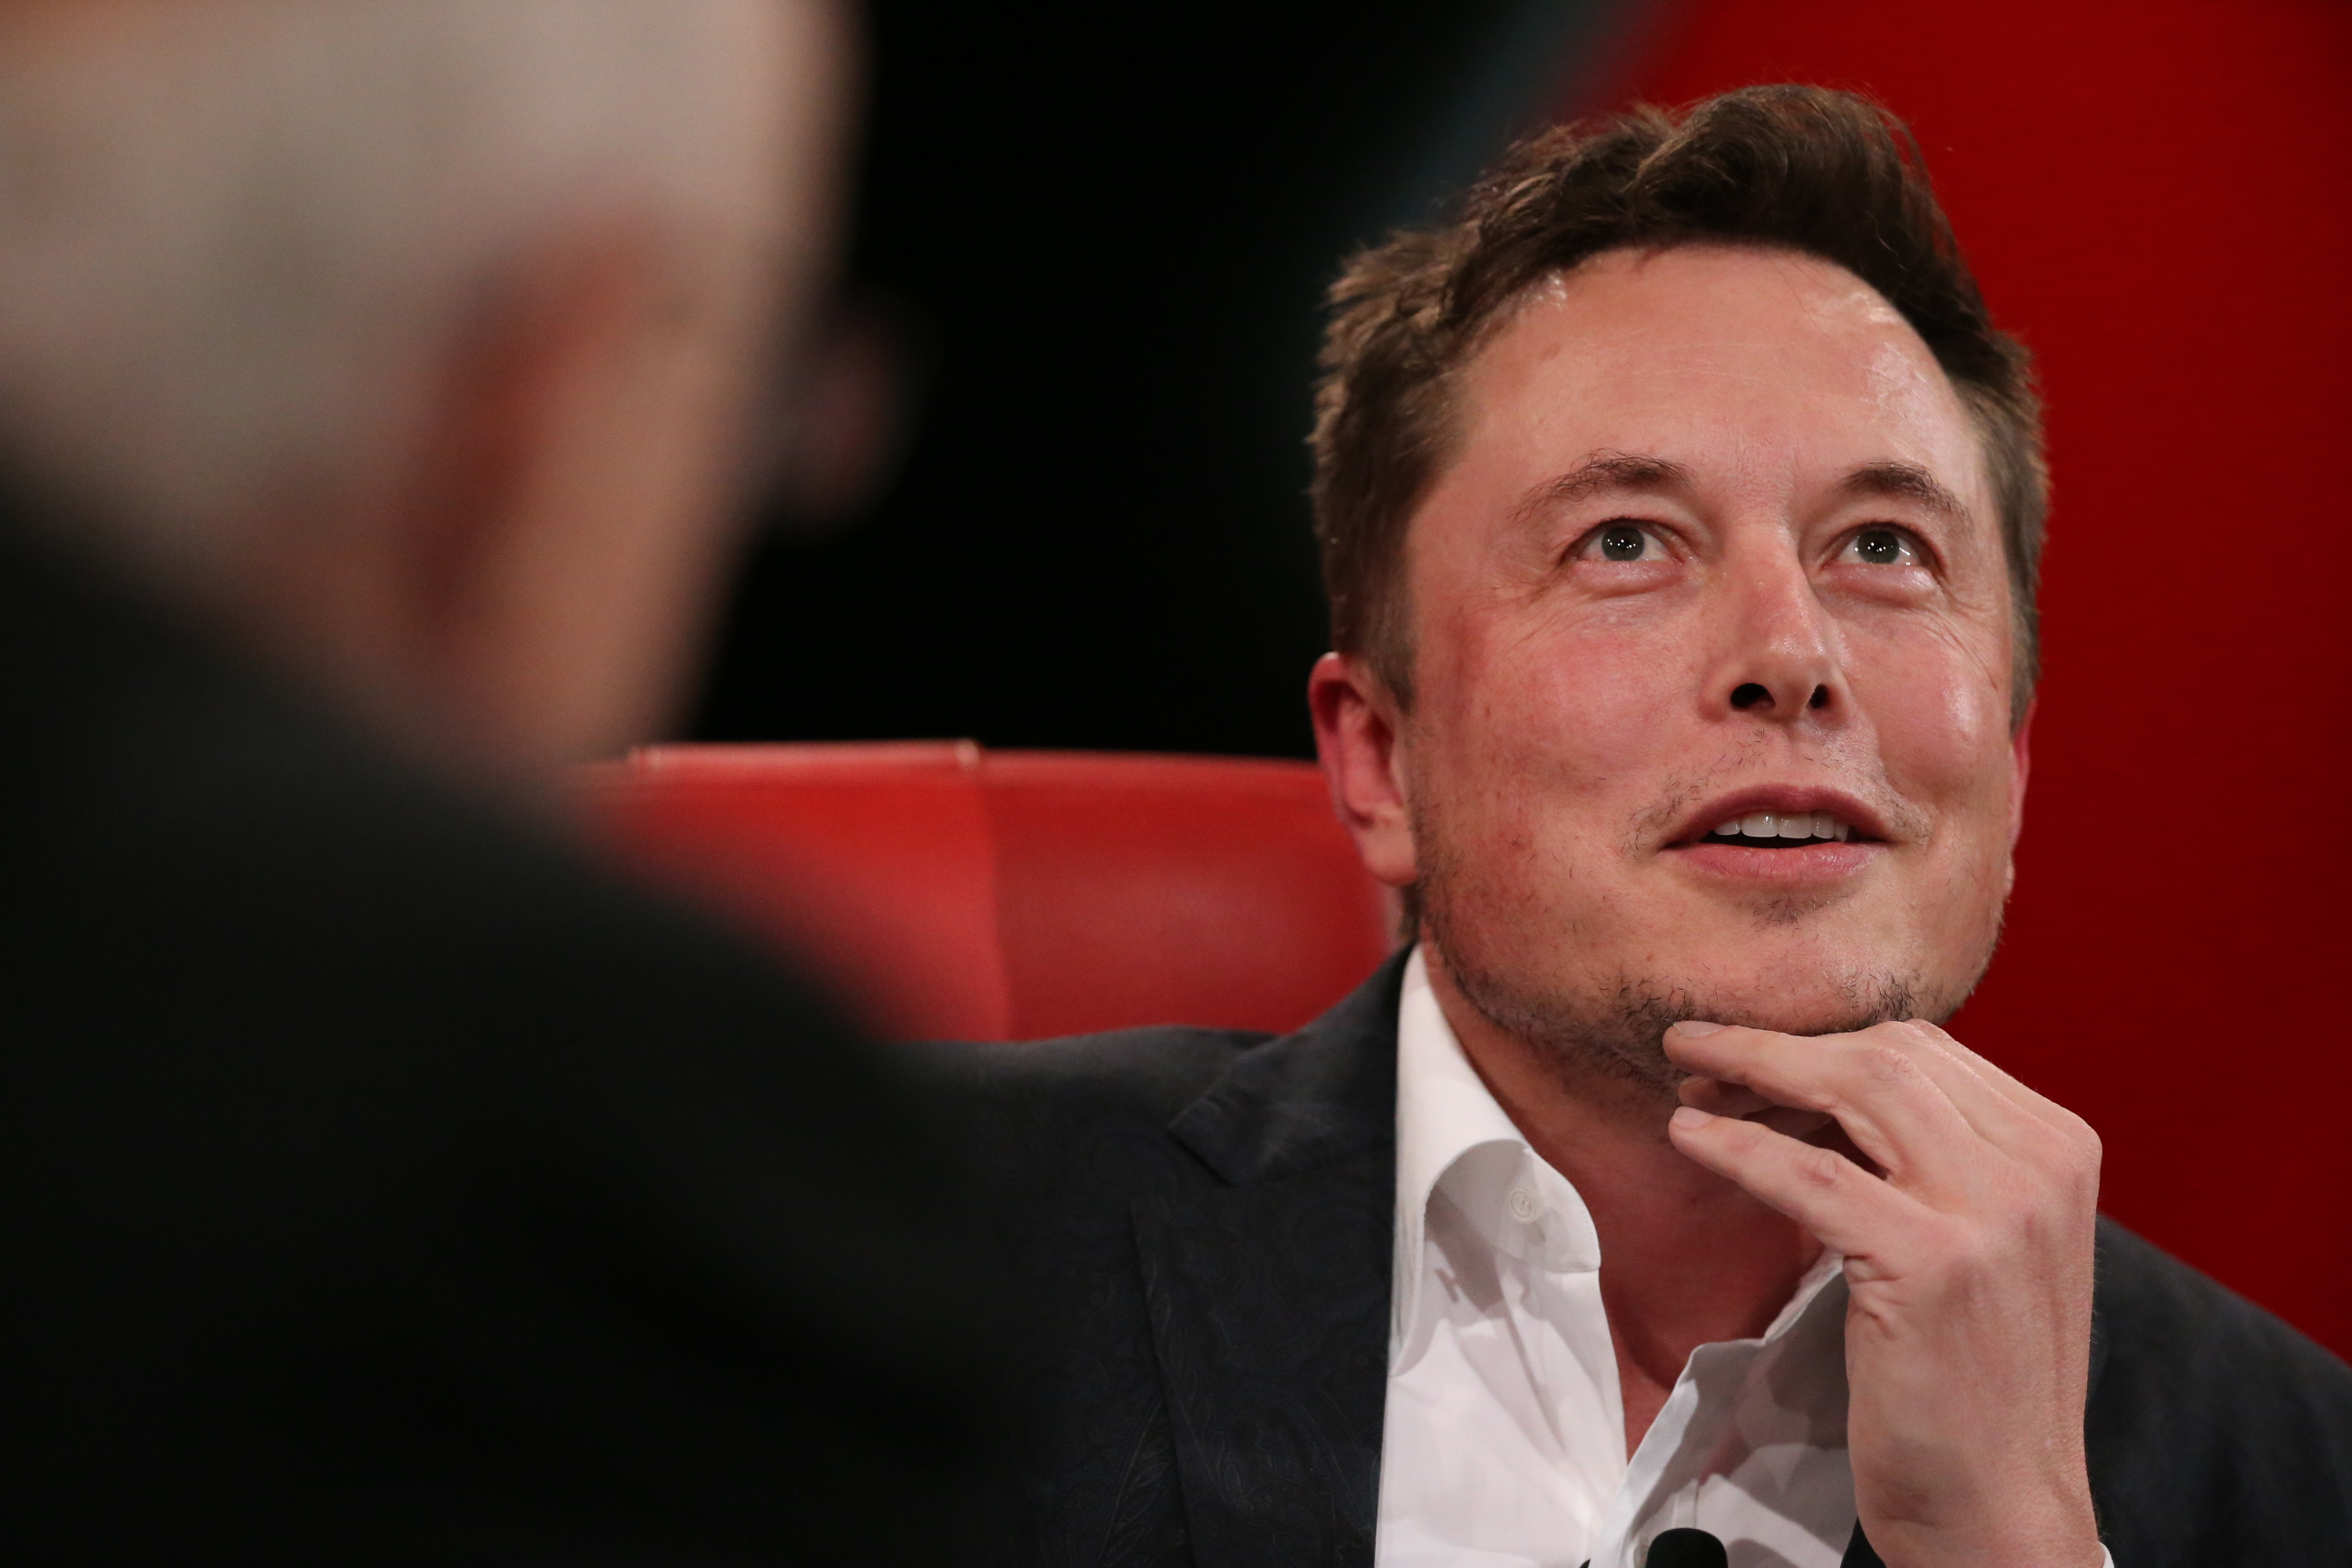 Elon Musk at Code Conference 2016, hand on chin, looking up.